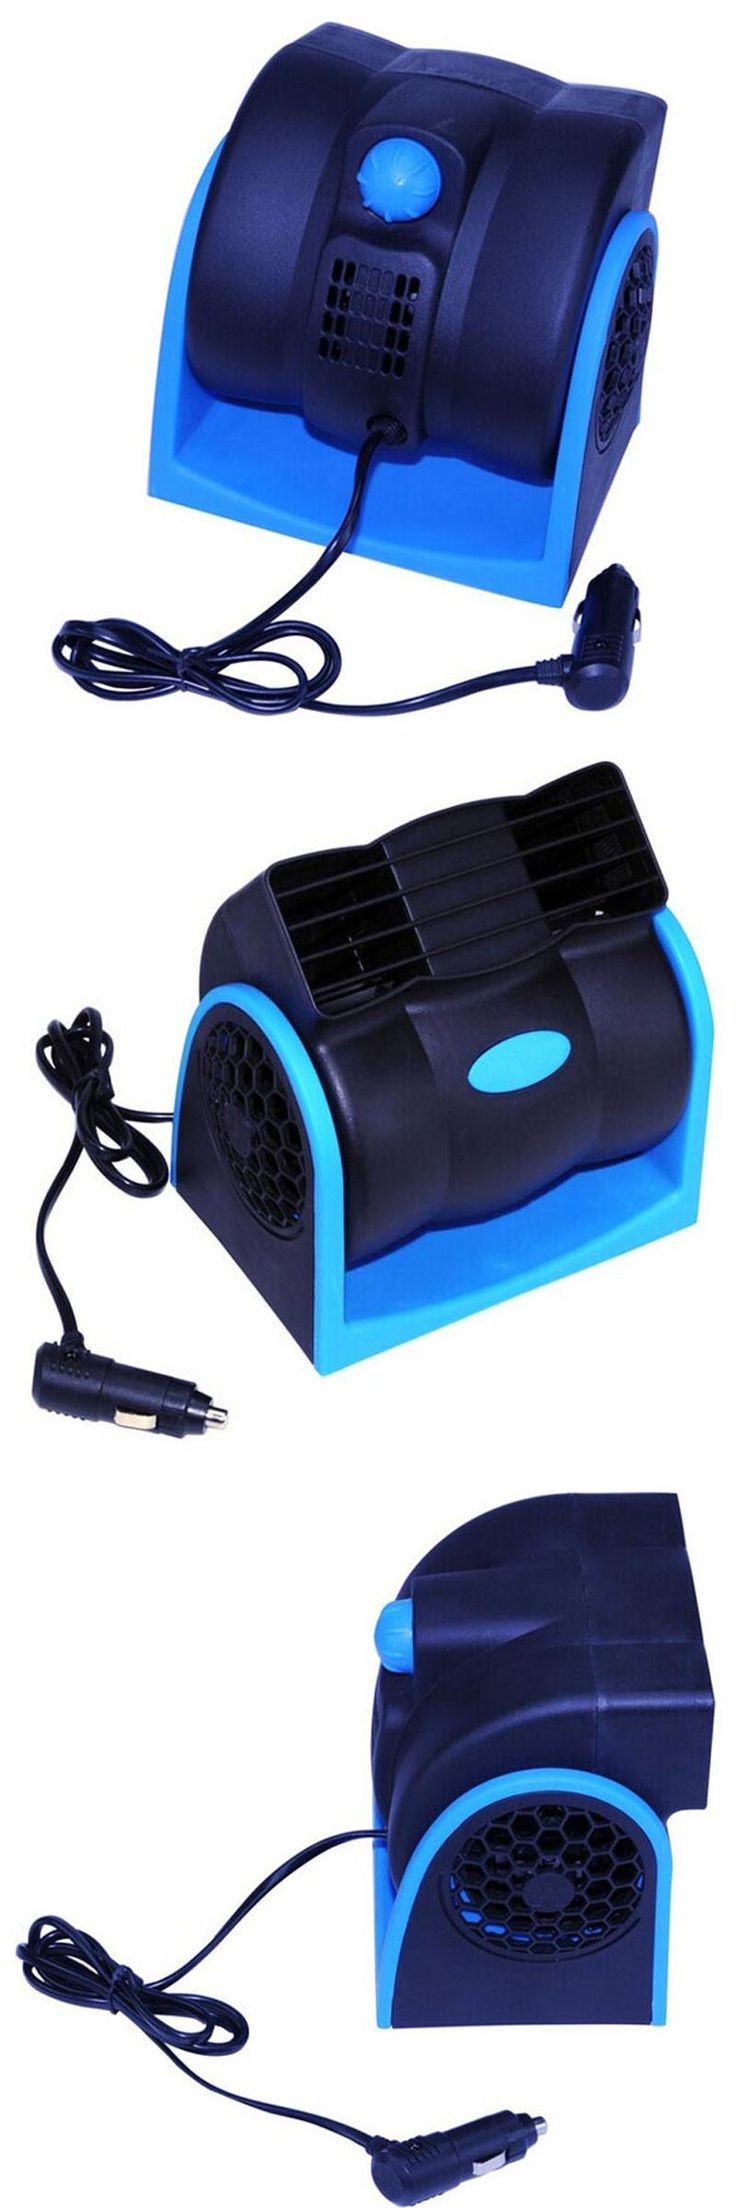 [Visit to Buy] Portable Car Vehicle Truck Cooling Air Fan 12V Adjustable Low Noise Silent Cooler Fan 2 Speeds Air Conditioner for car/ SUV/ATV #Advertisement